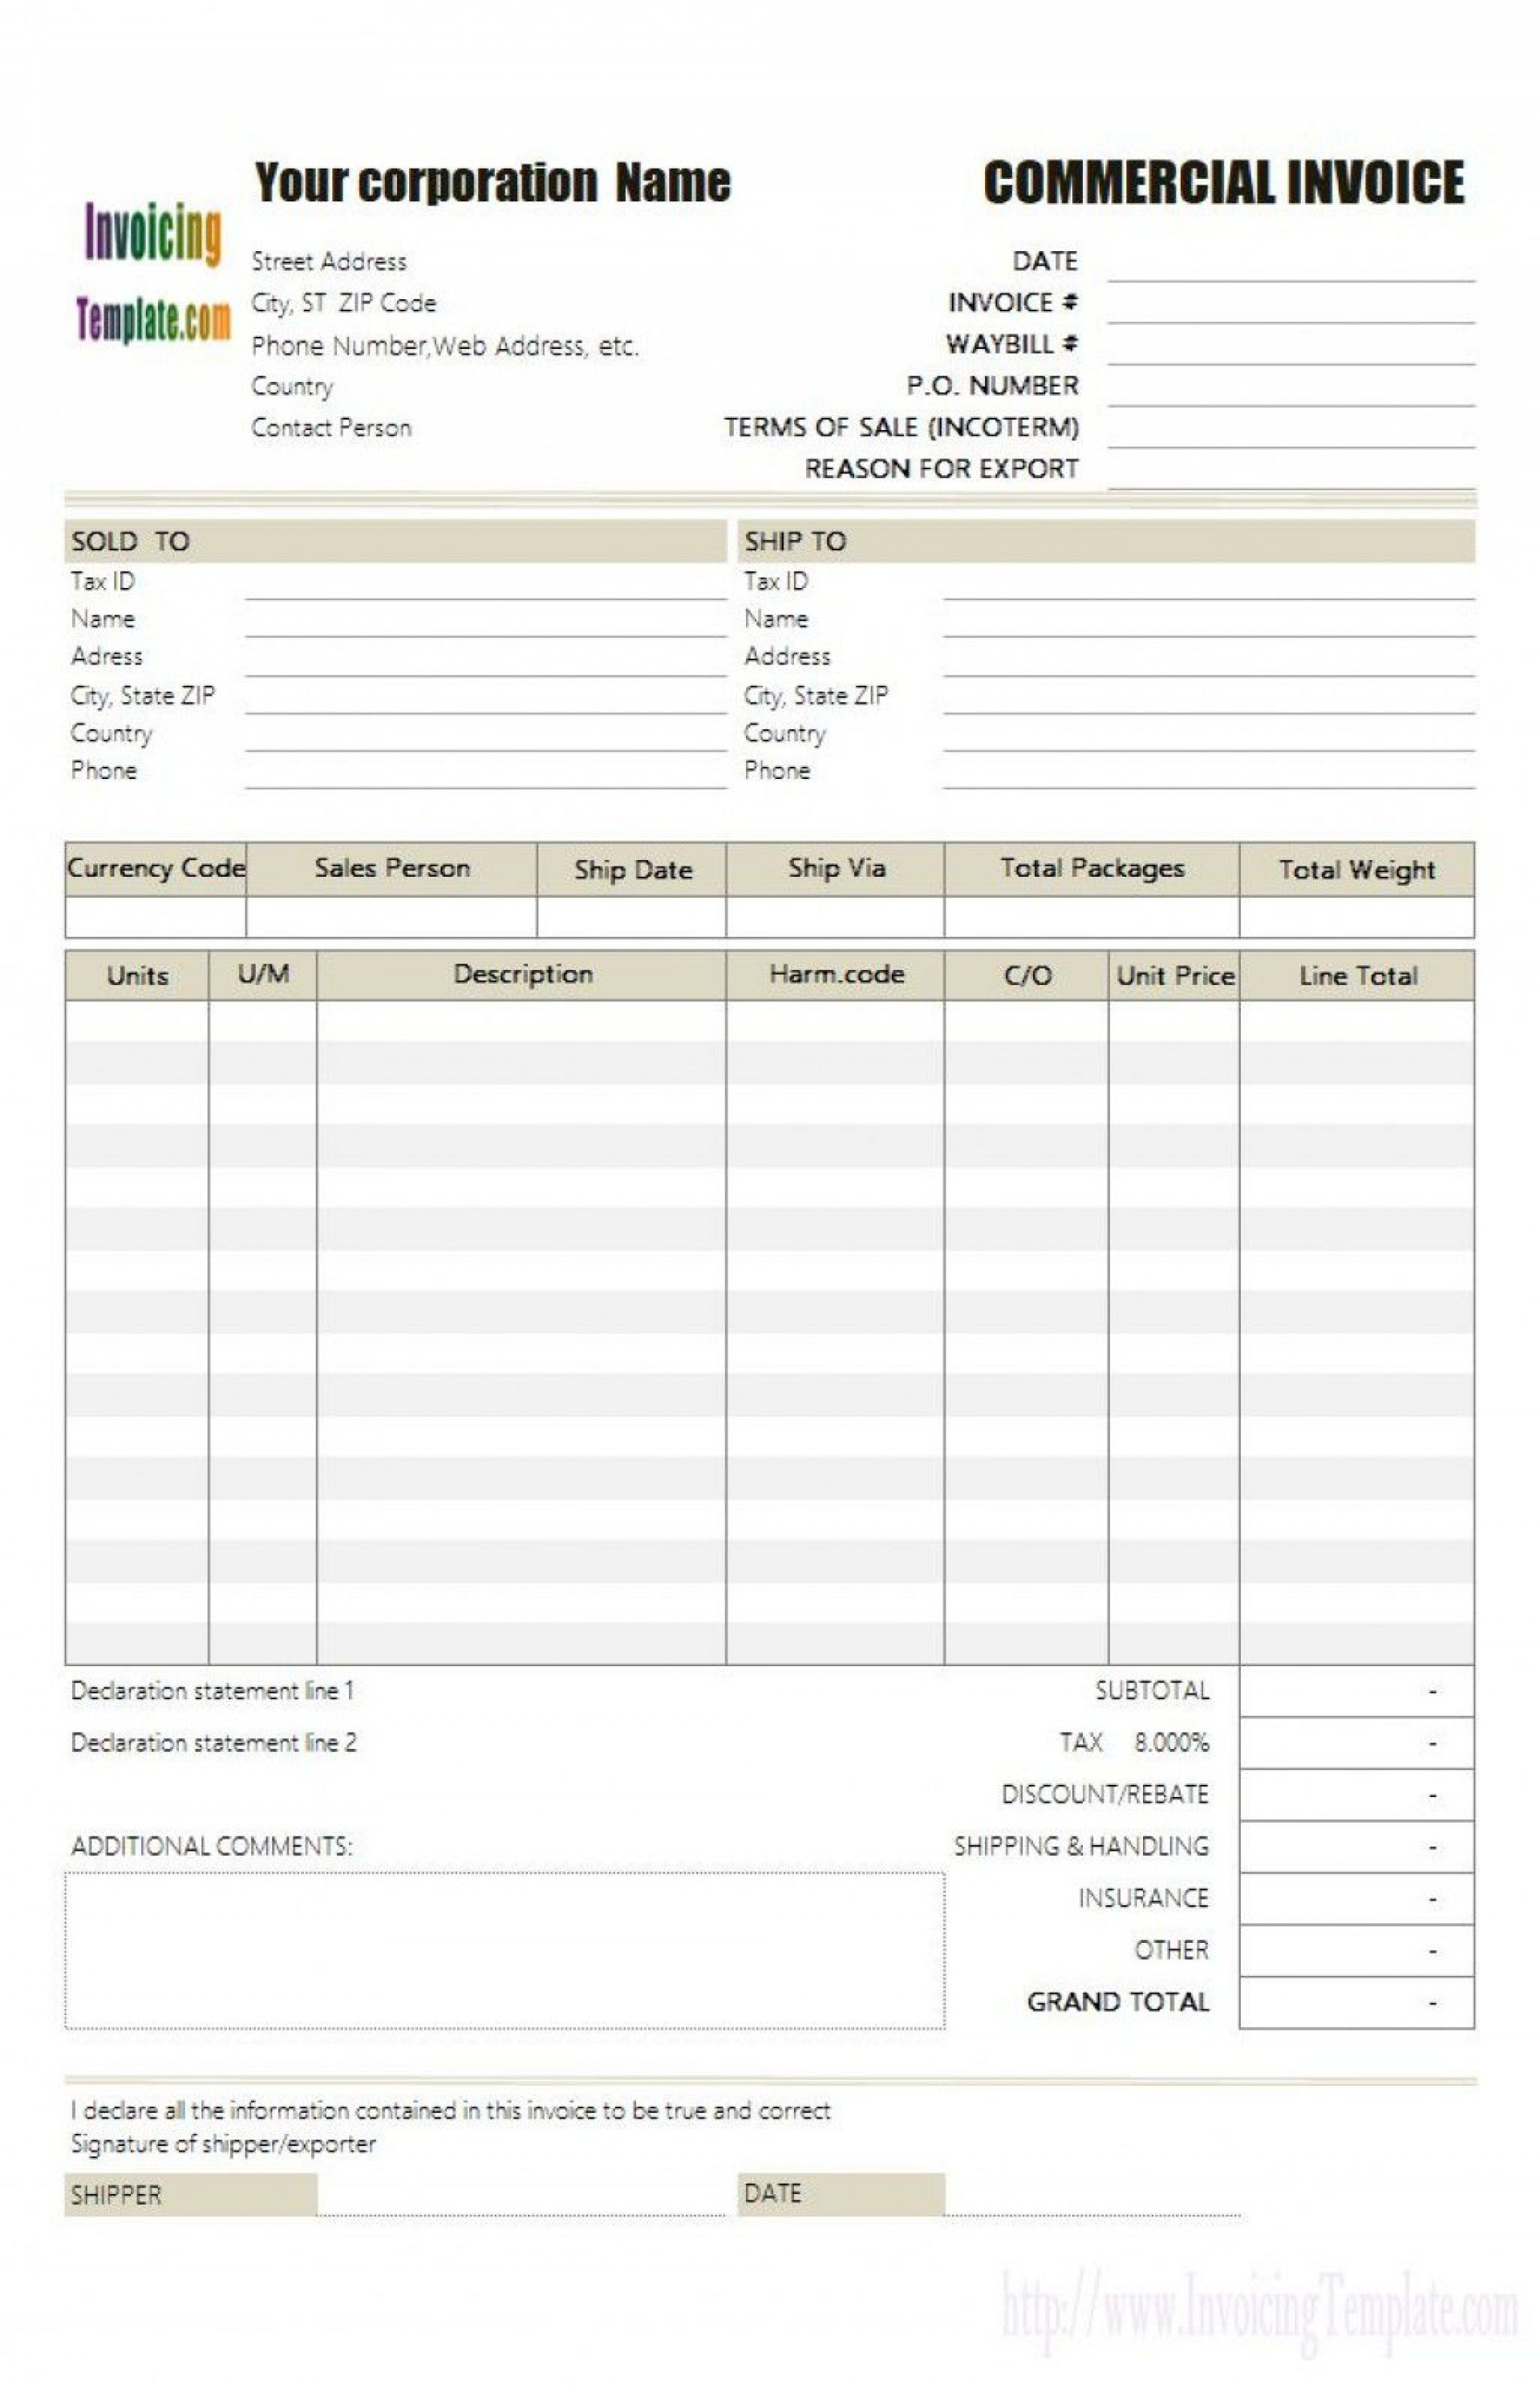 001 Excellent Commercial Invoice Template Excel High Resolution  Free Download1920